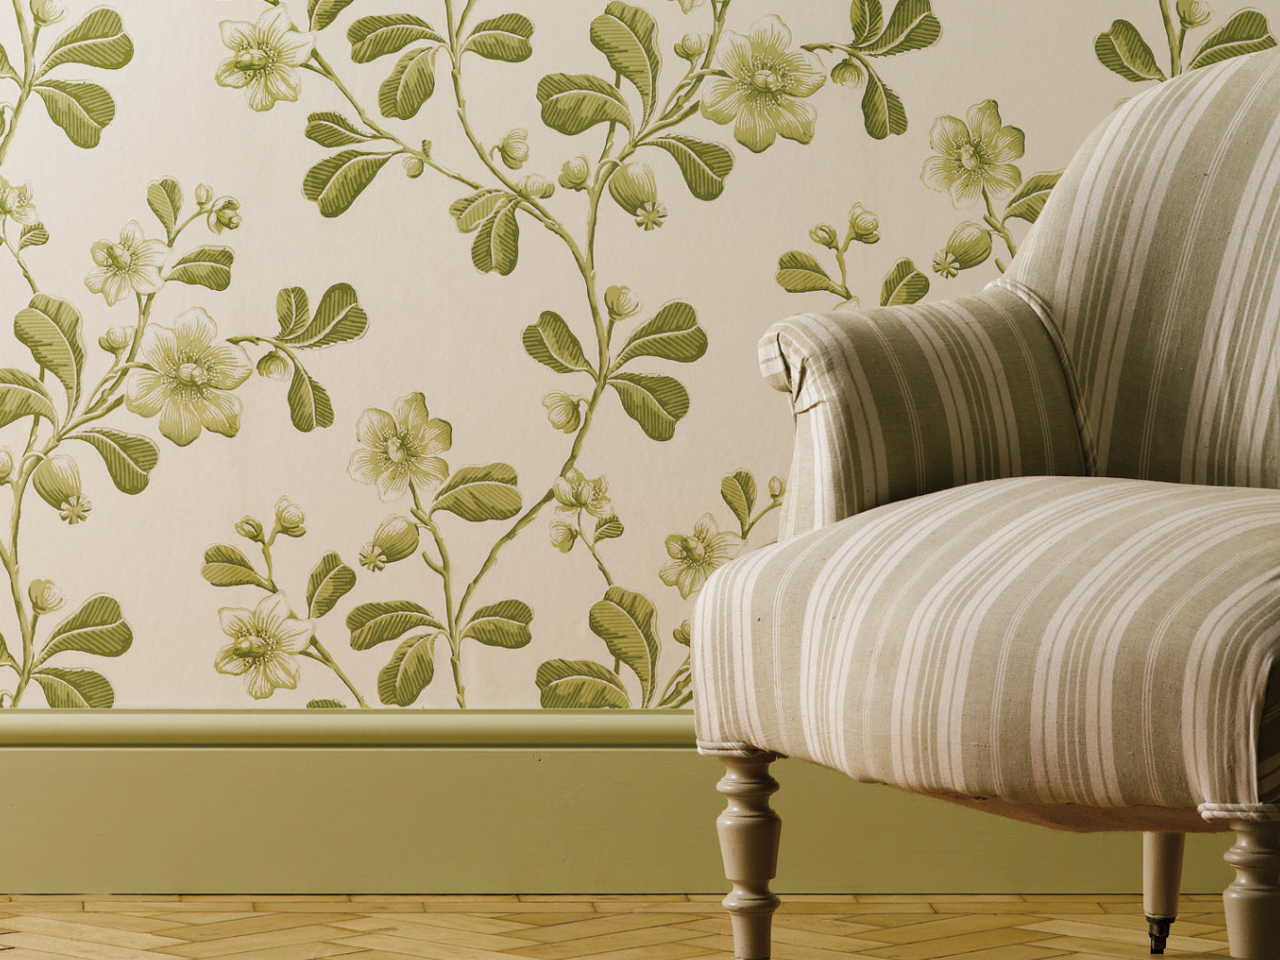 Escapology Launches Luxury Paint & Wallpaper Collections